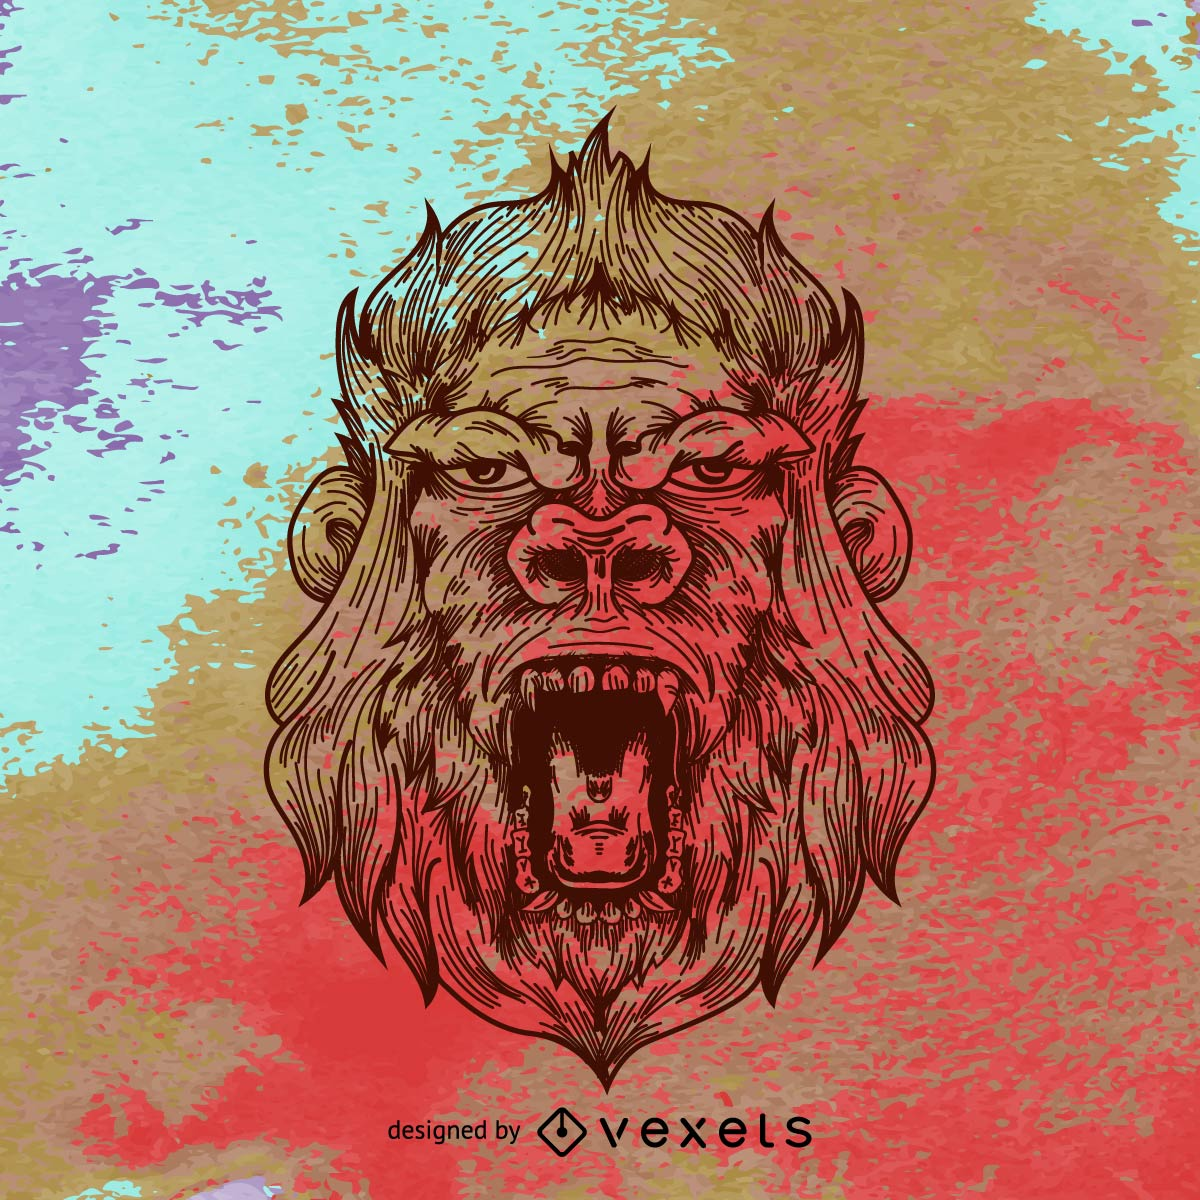 Gorilla illustration over grunge background